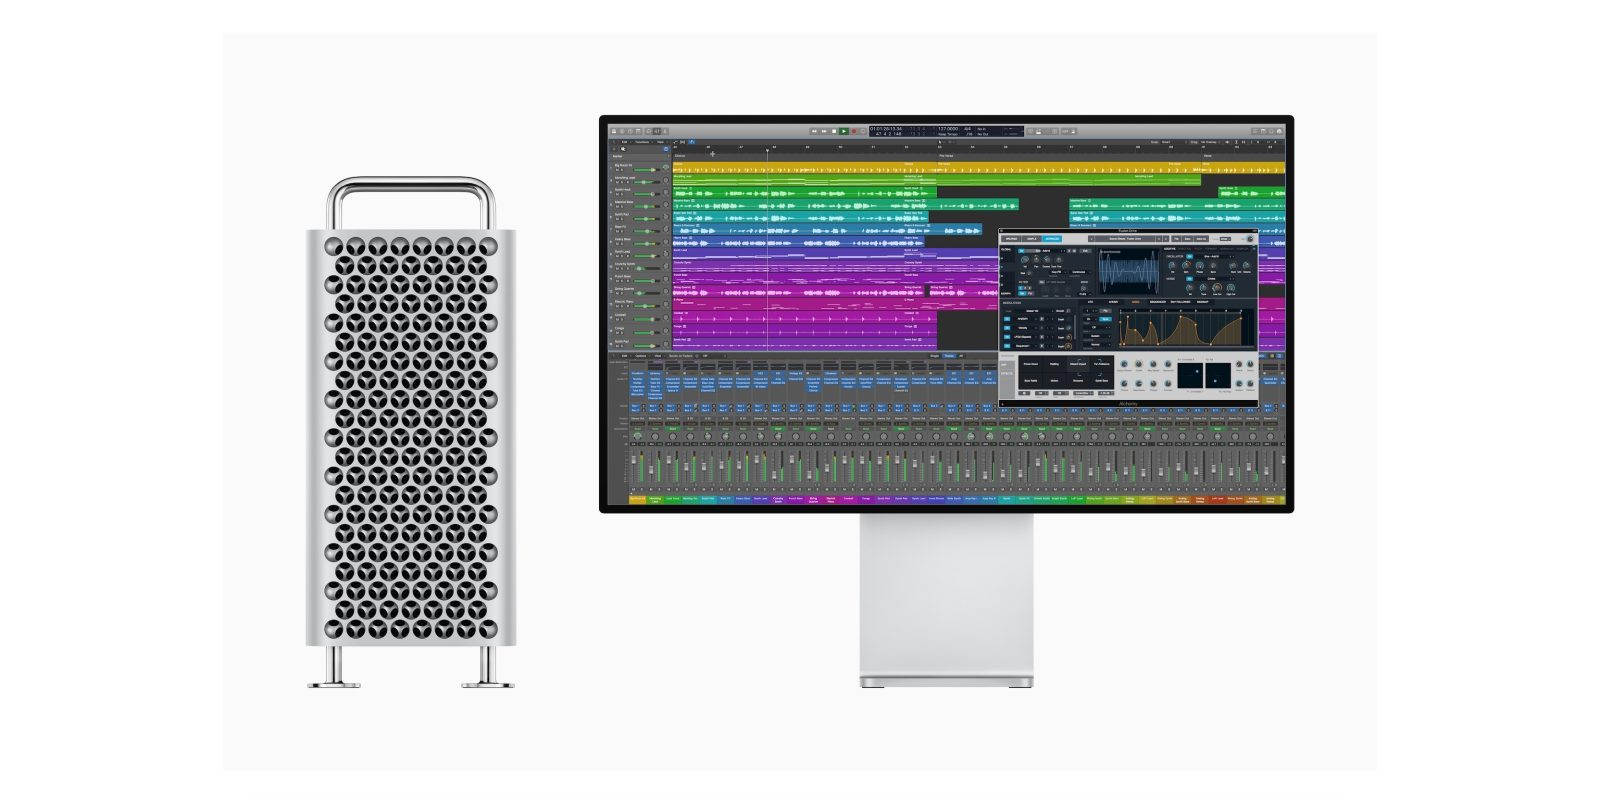 Mac Pro Specs, Features, Price, Reviews, and Rumors - 9to5Mac